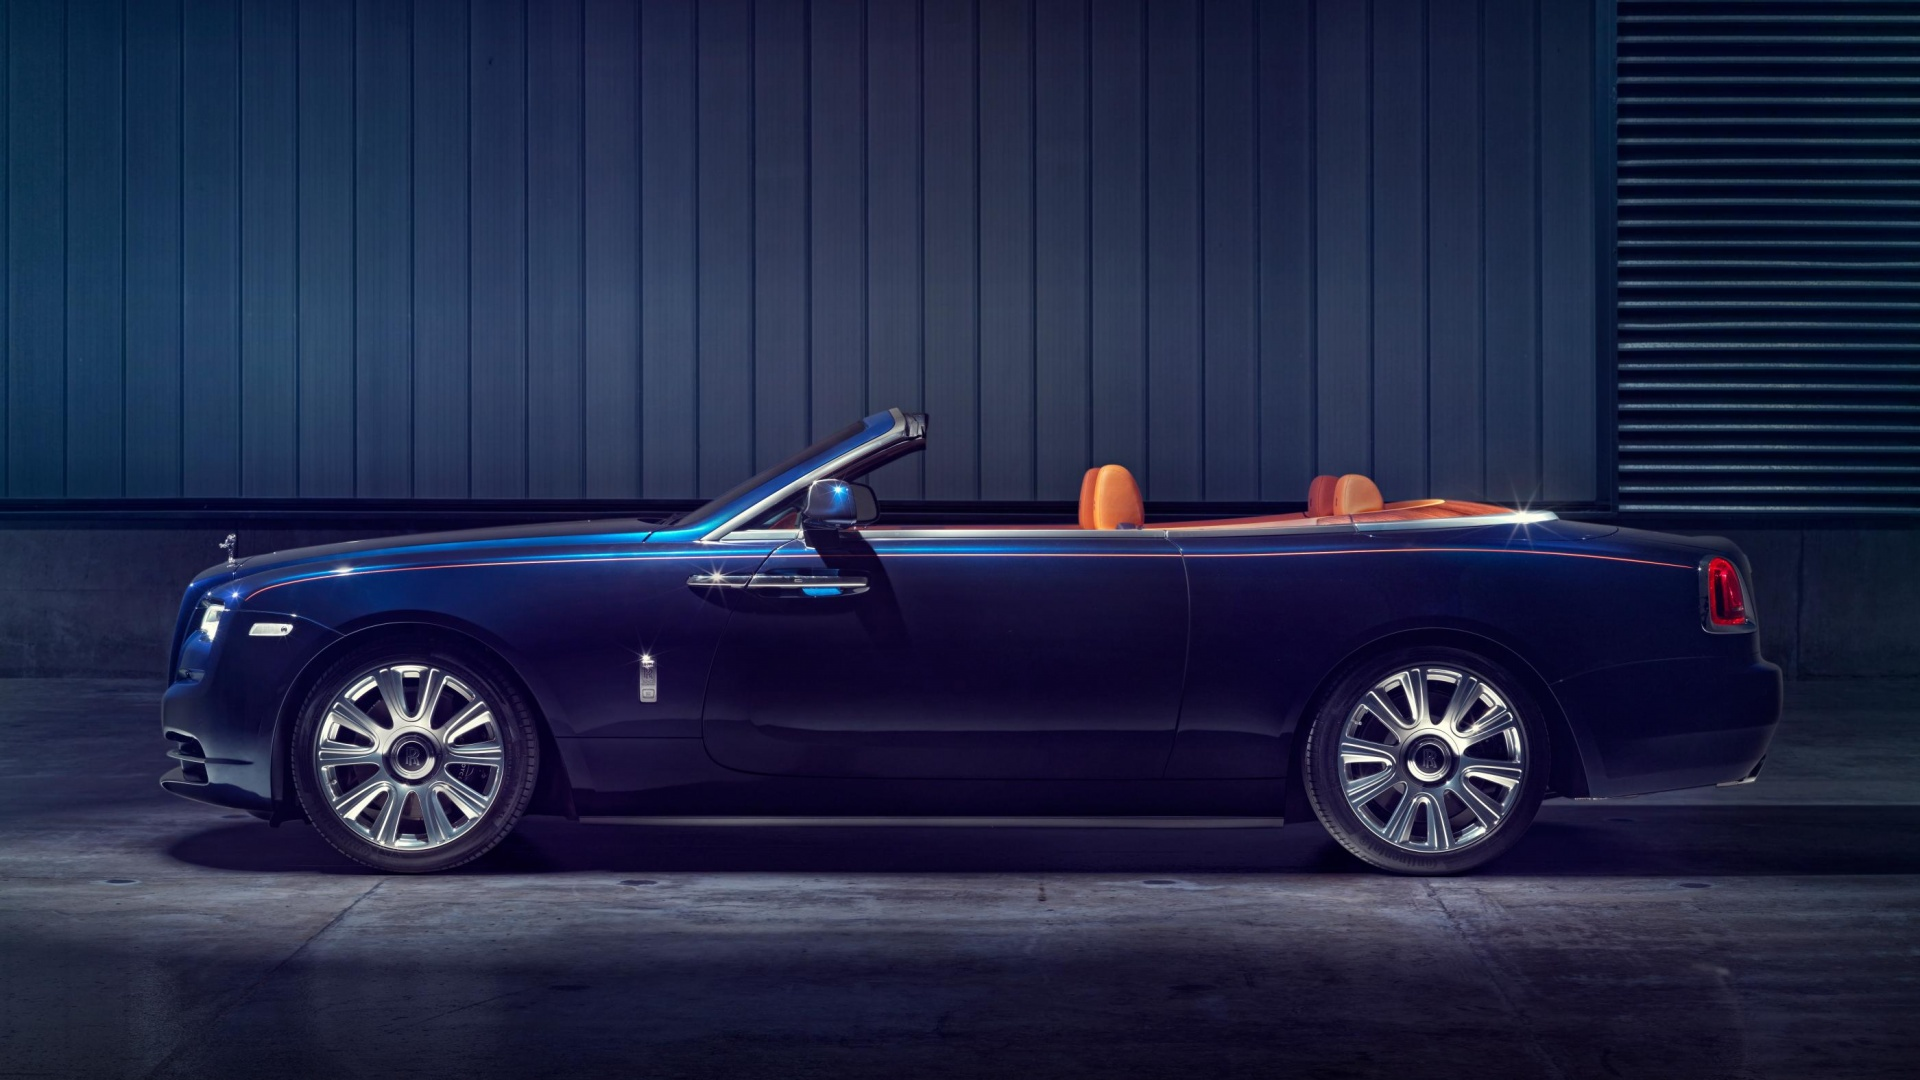 Roll Royce Car Hd Wallpaper New Model Perspective Rolls Royce Dawn Goes Hunting For